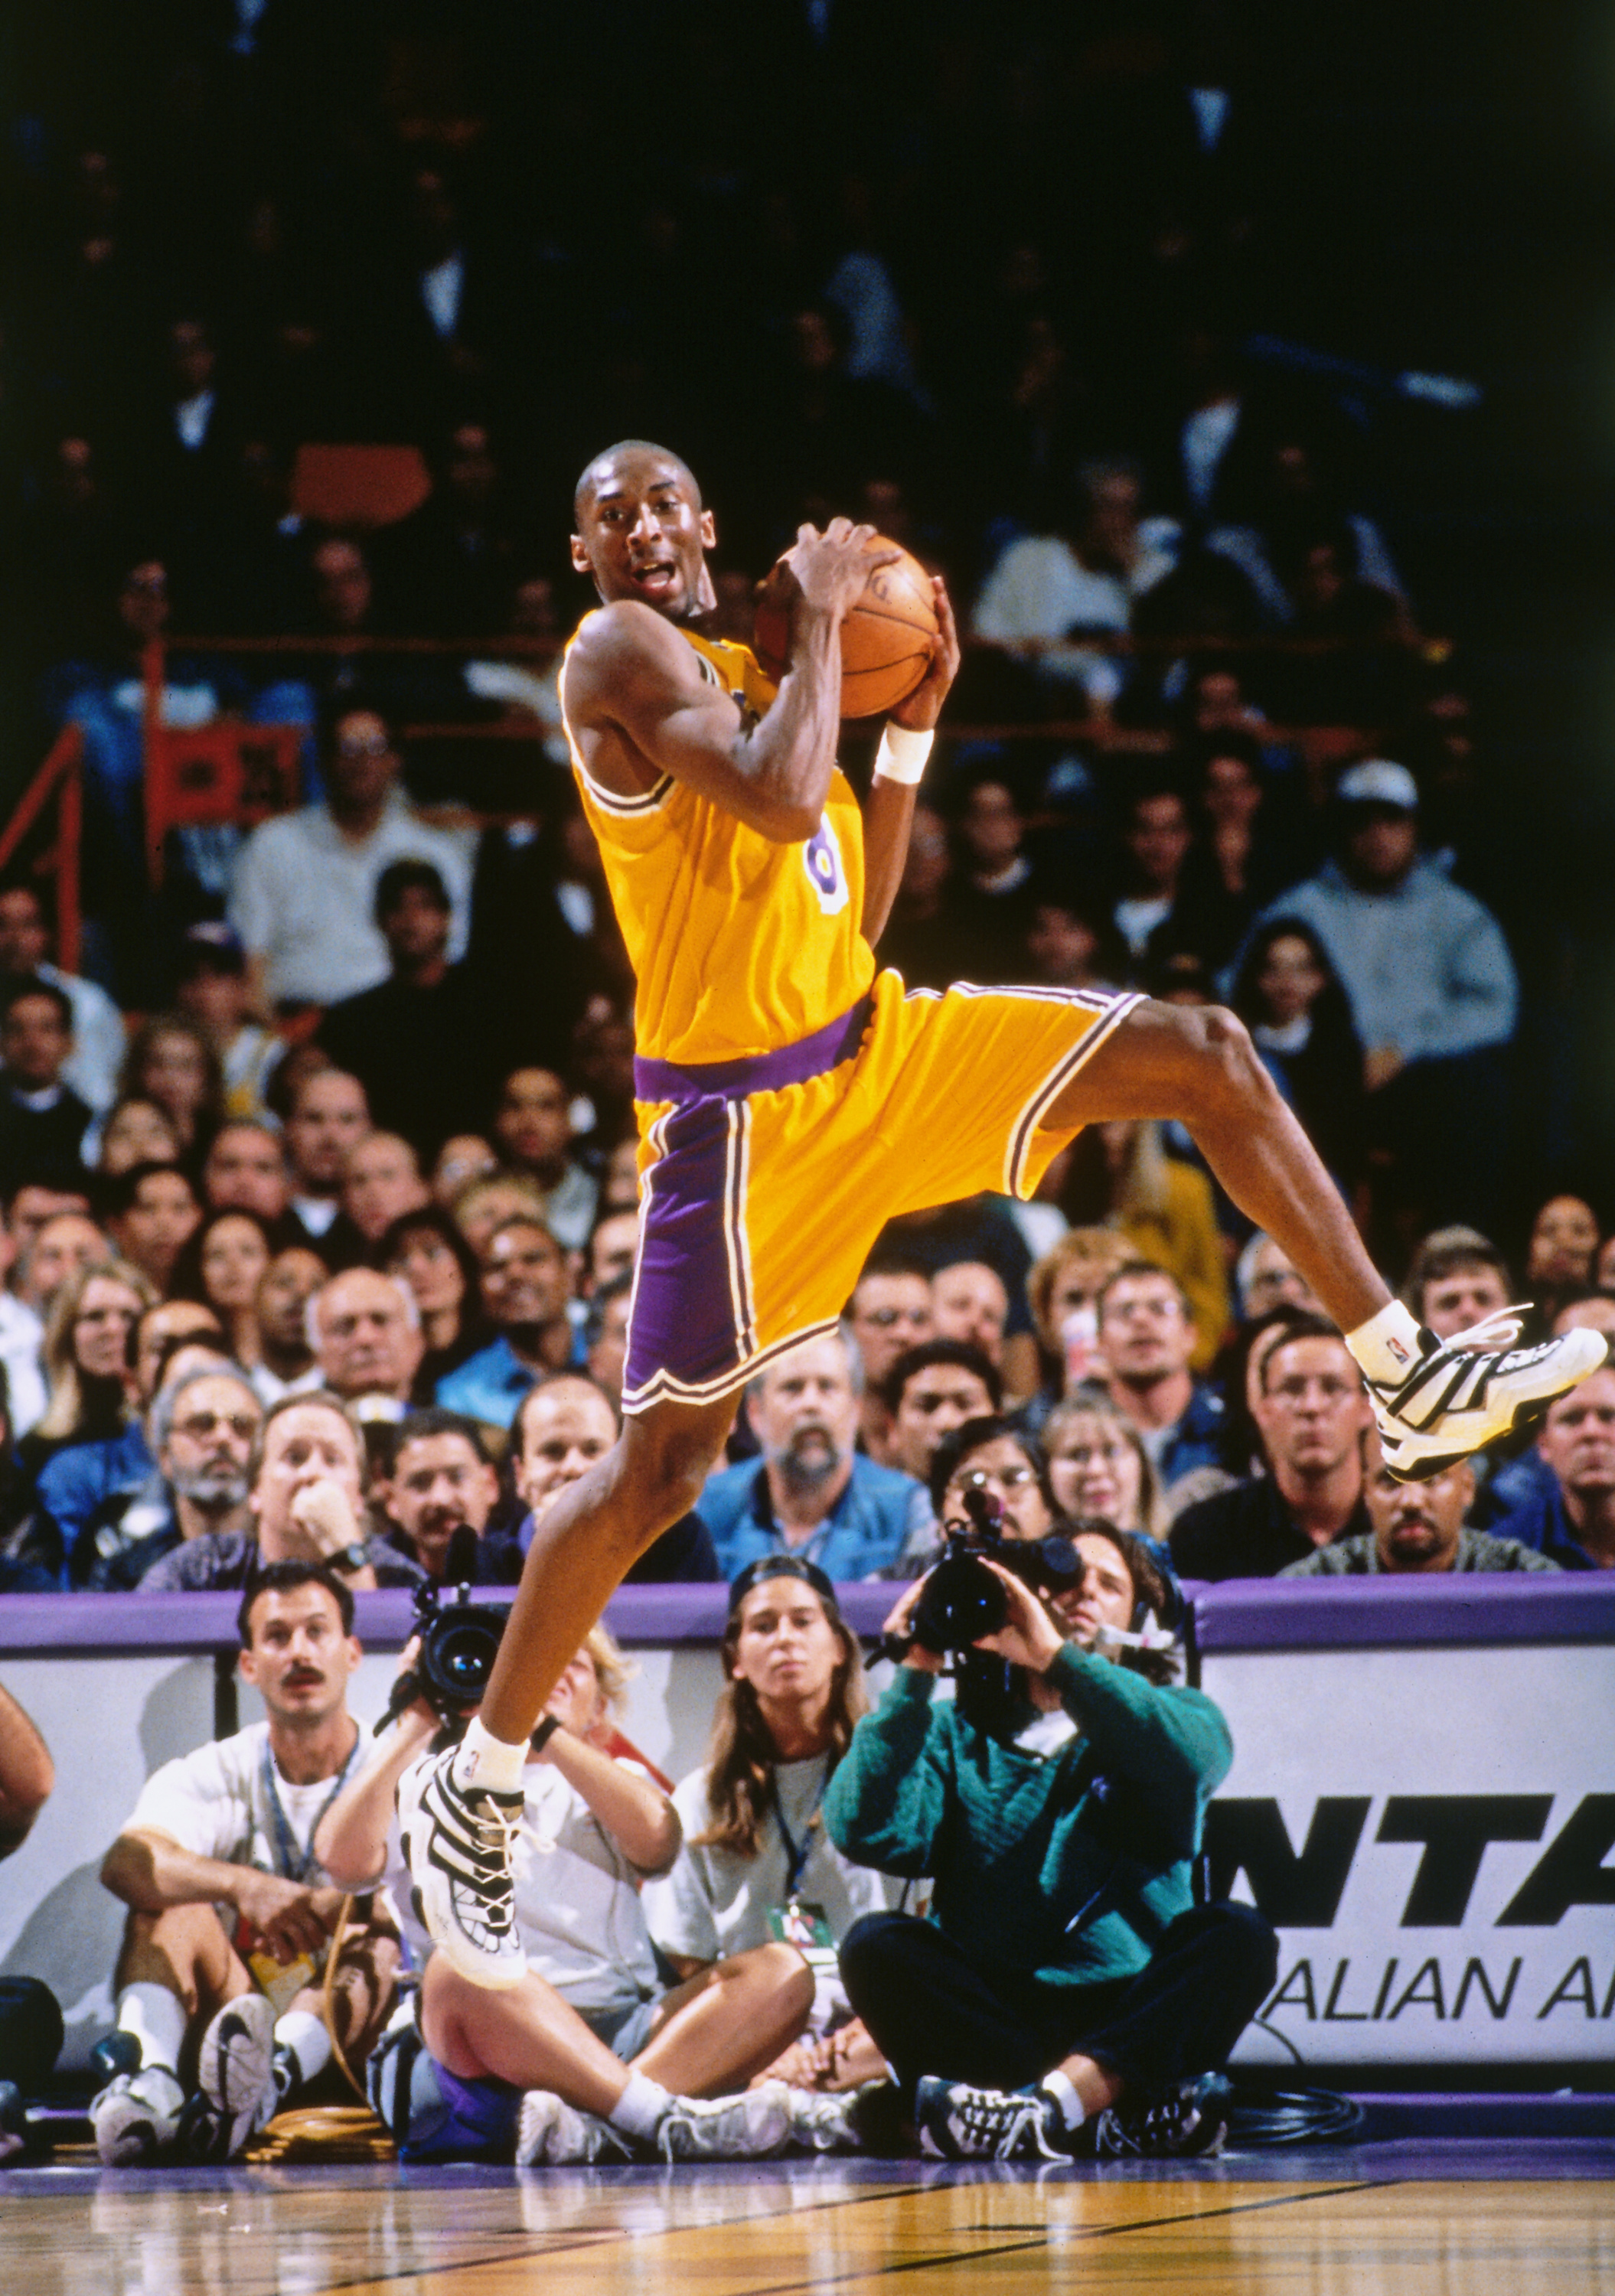 Bryant rebounds against the Minnesota Timberwolves in his first regular season game at The Forum in Inglewood, Calif., on Nov. 3, 1996. At the time, he became the youngest-ever player to play in an NBA game.